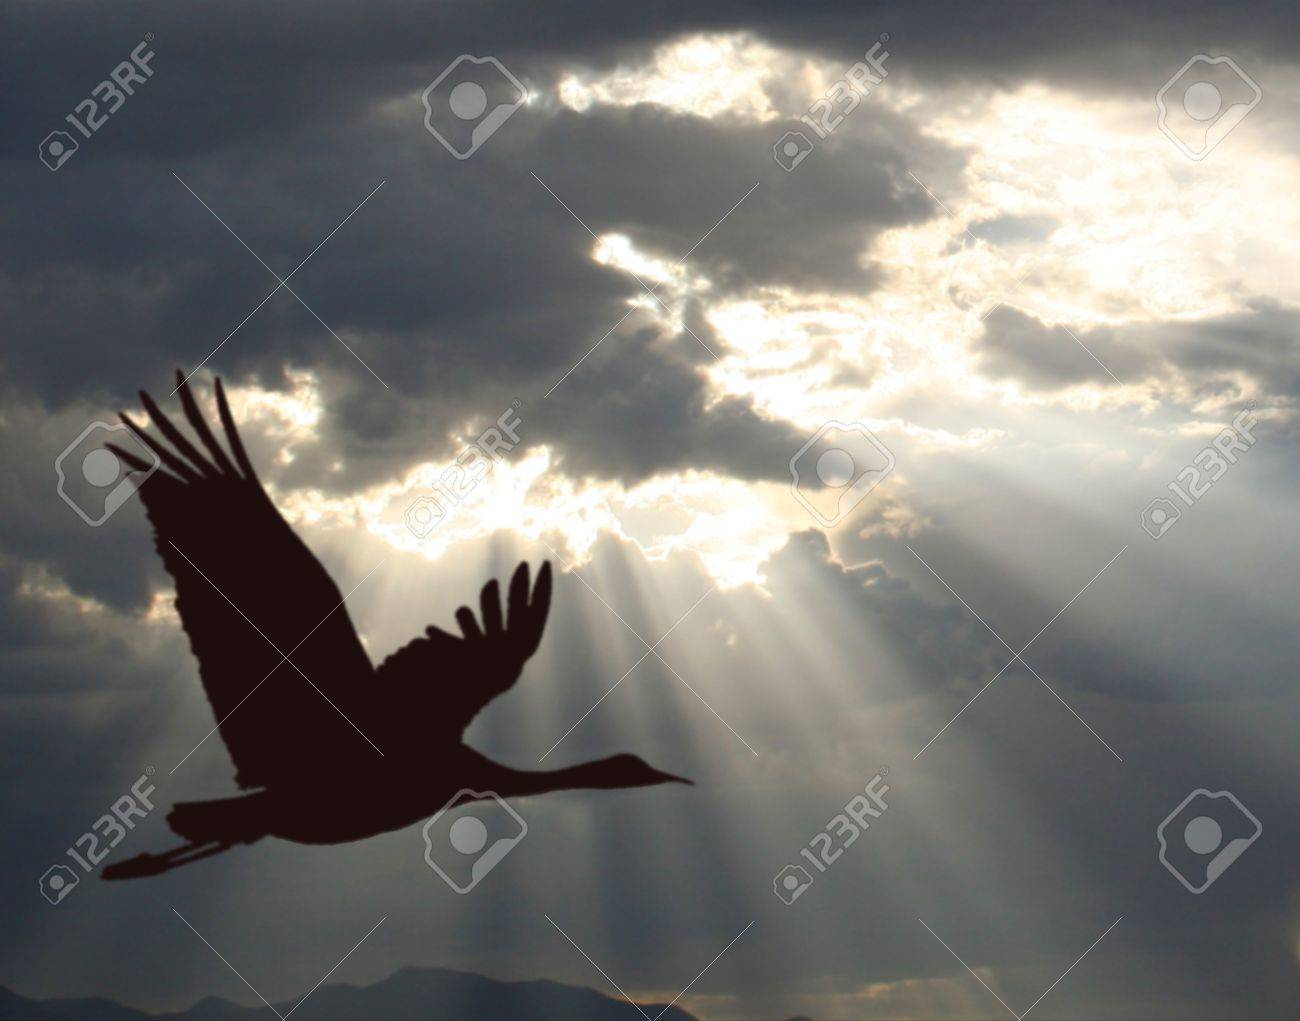 It Was Twilight And Sandhill Cranes >> A Lone Sandhill Crane Glides Across A Twilight Sky As Crepuscular